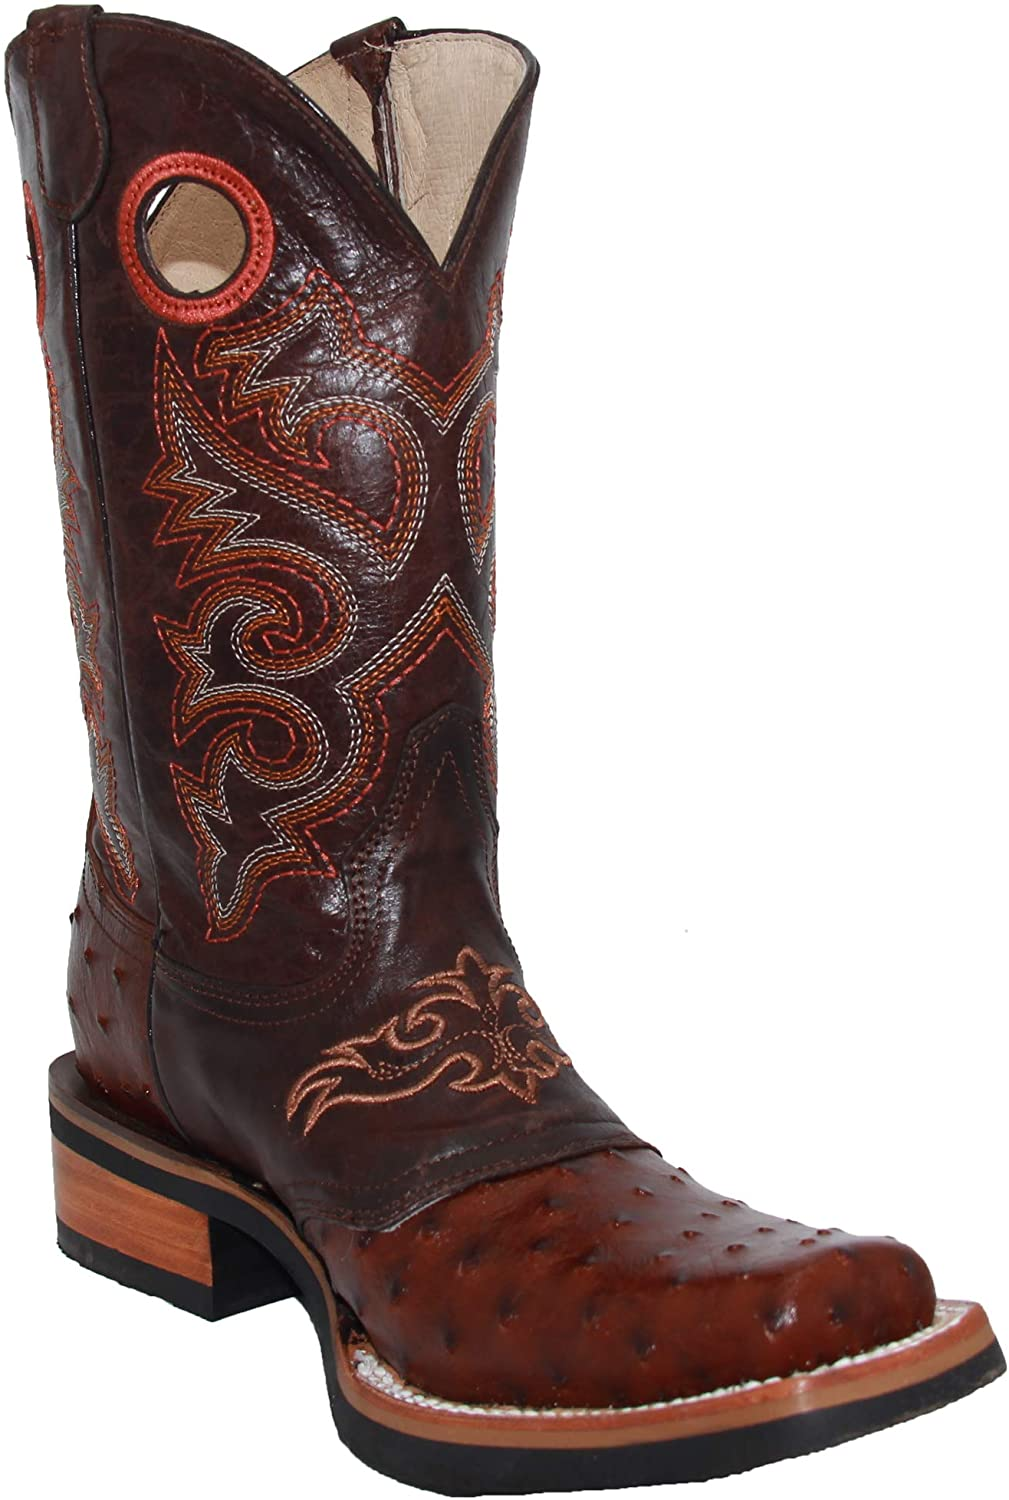 Western Shops Mens Genuine Cowhide Leather Square Toe Ostrich Quill Print Western Cowboy Boots